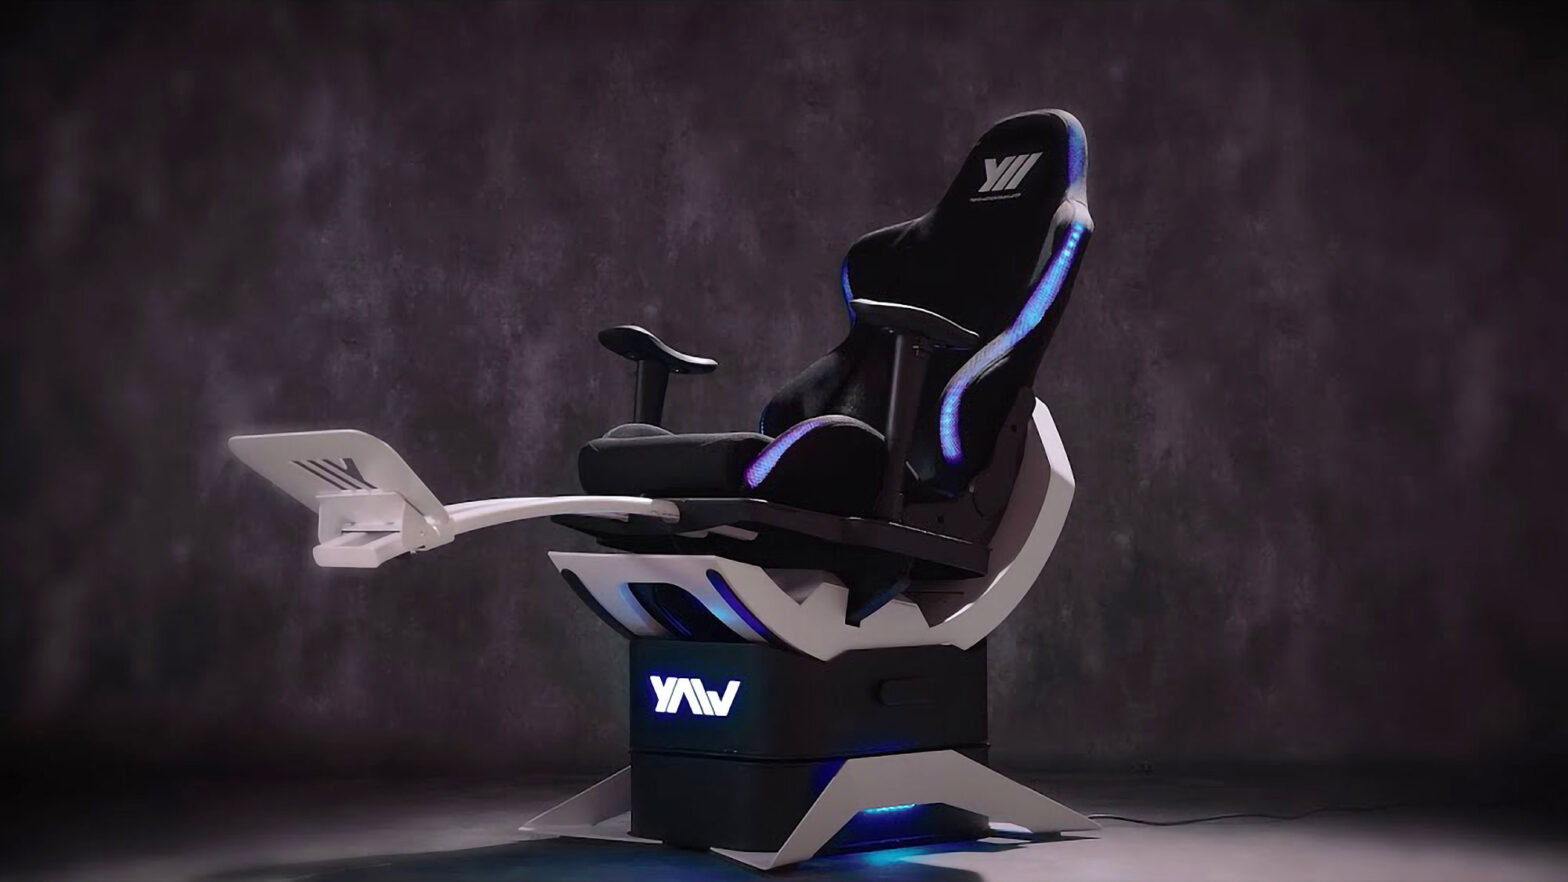 Yaw2 Motion Simulator and Smart Chair